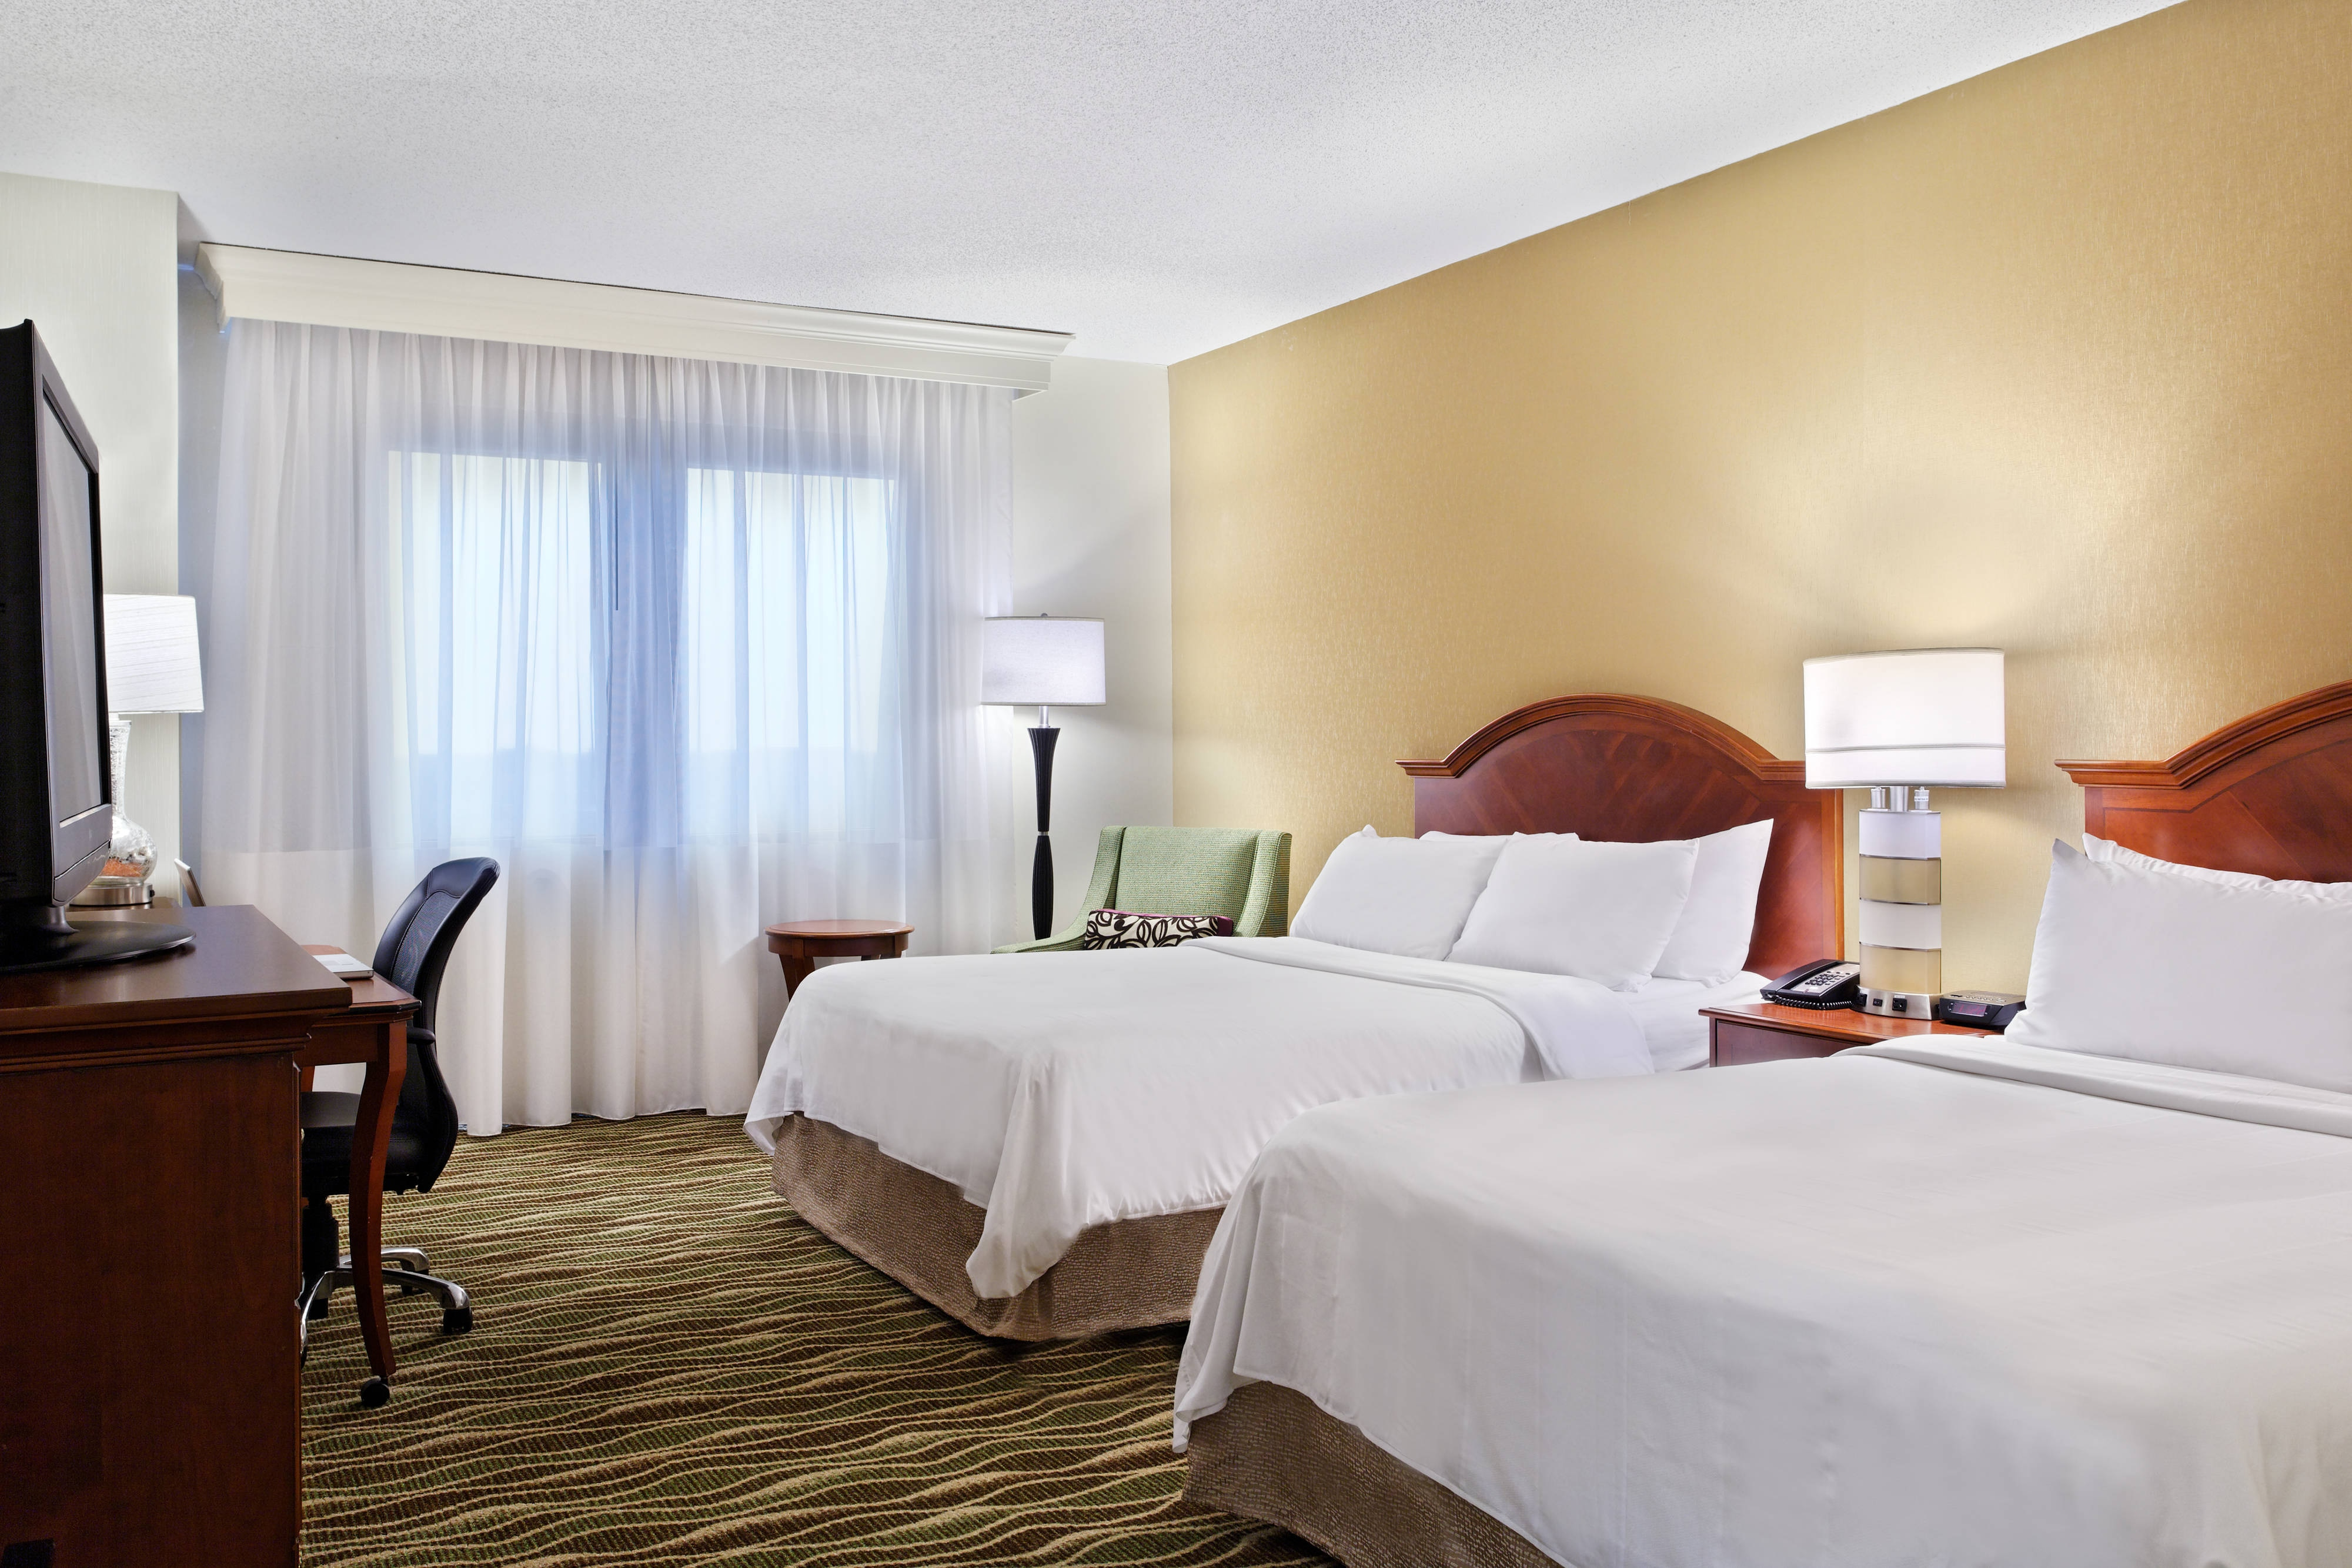 Spartanburg Marriott Guest Room